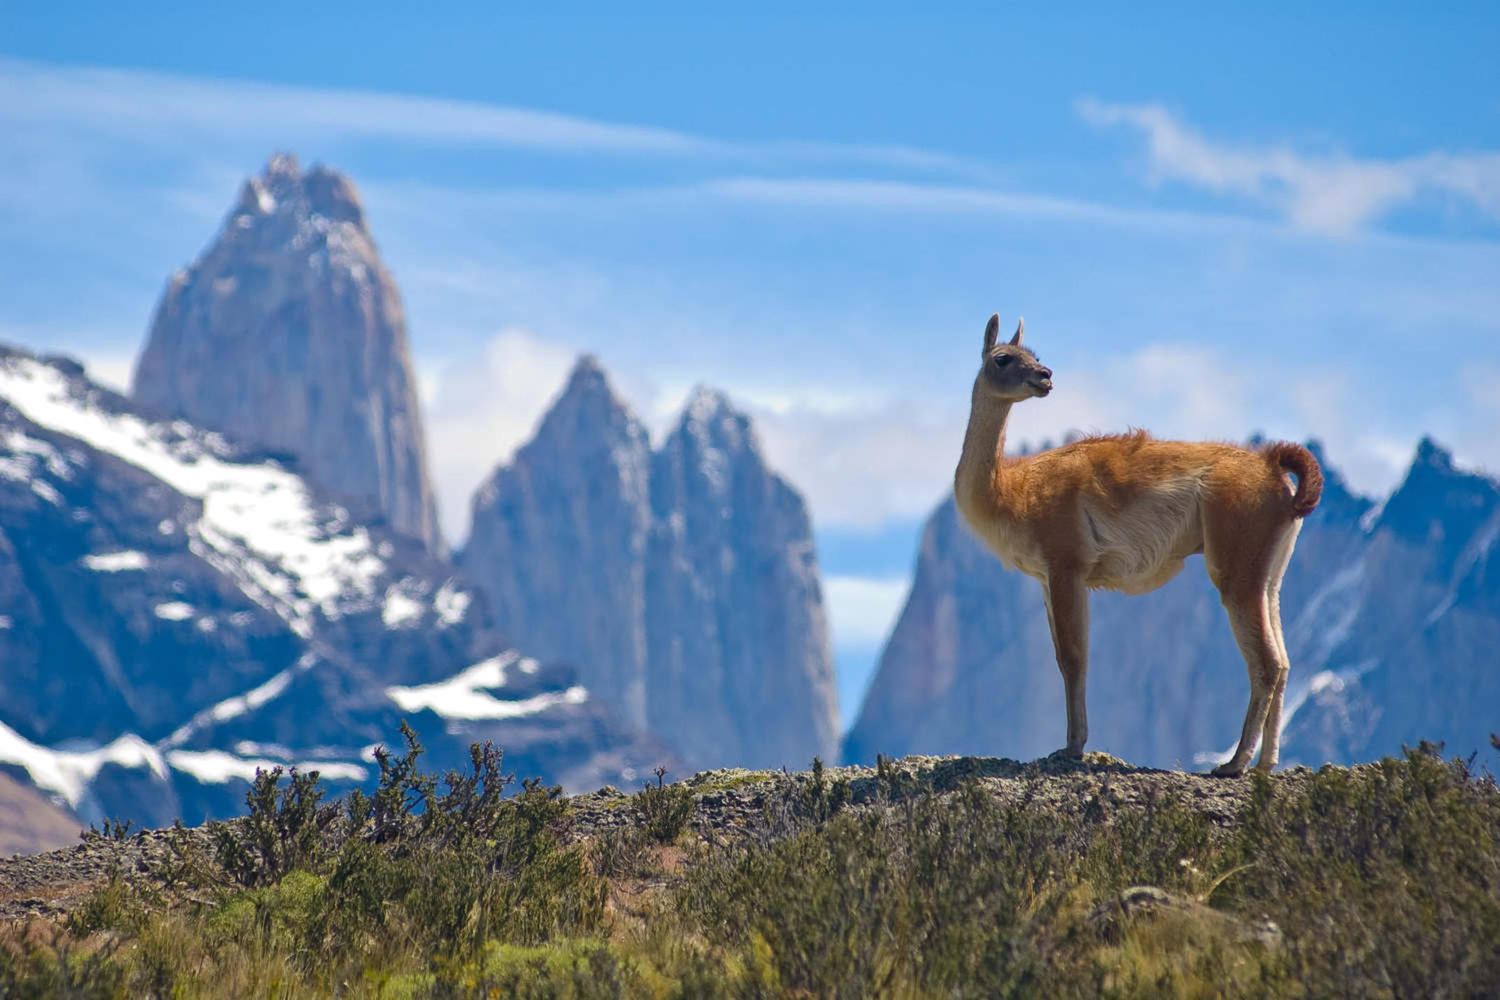 Guanaco admiring the scenery at Torres del Paine